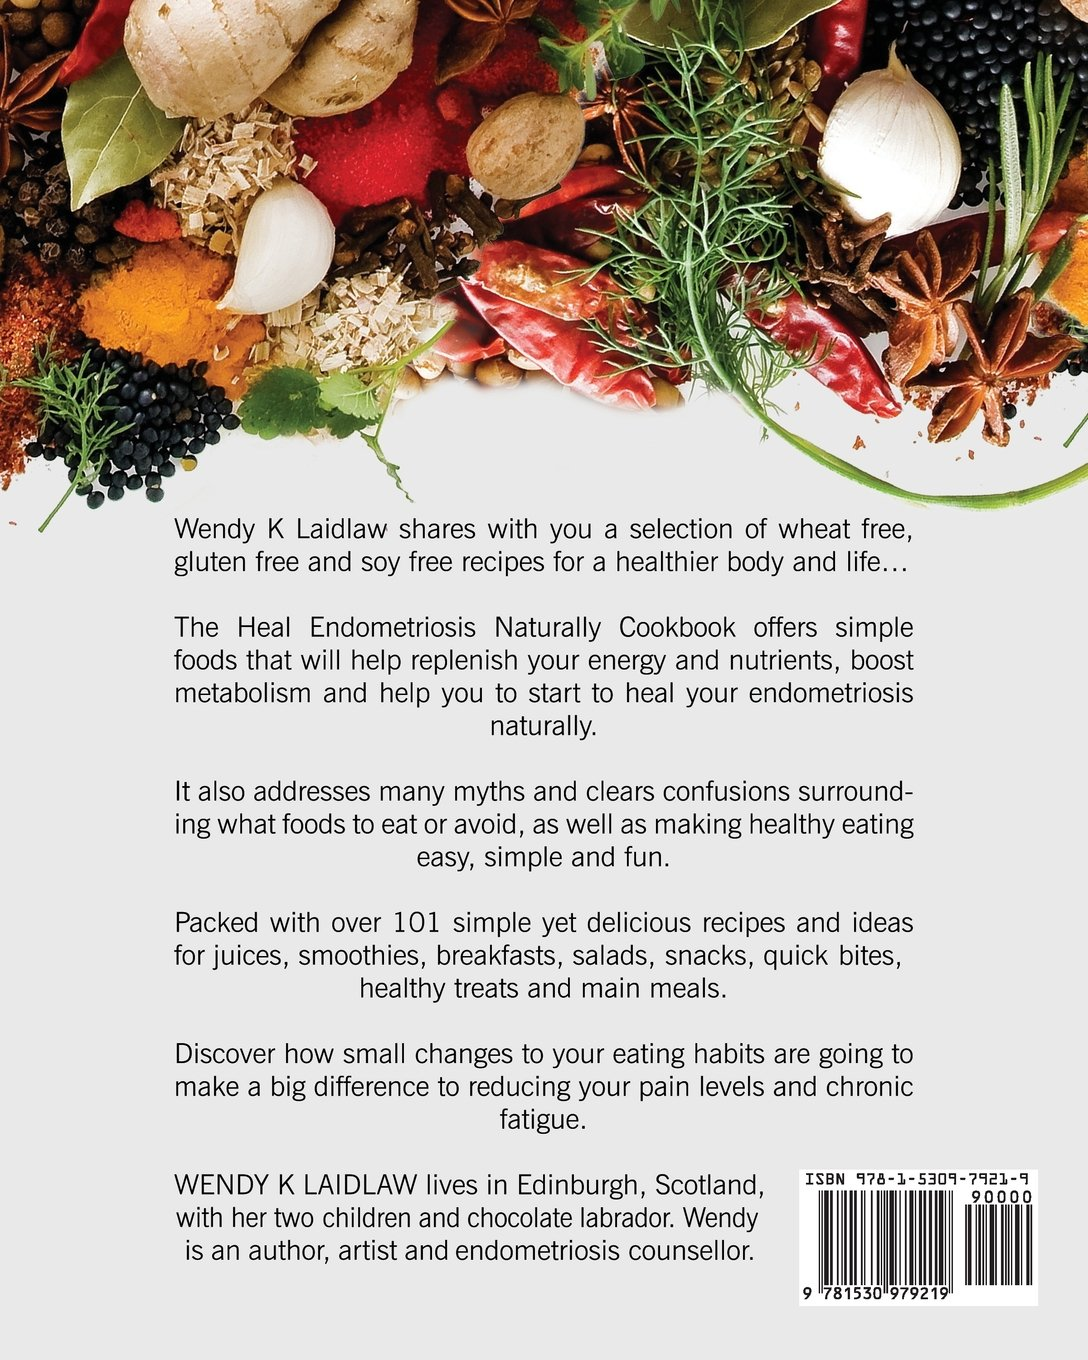 Heal endometriosis naturally cookbook 101 wheat gluten soy free heal endometriosis naturally cookbook 101 wheat gluten soy free recipes amazon wendy k laidlaw books forumfinder Image collections